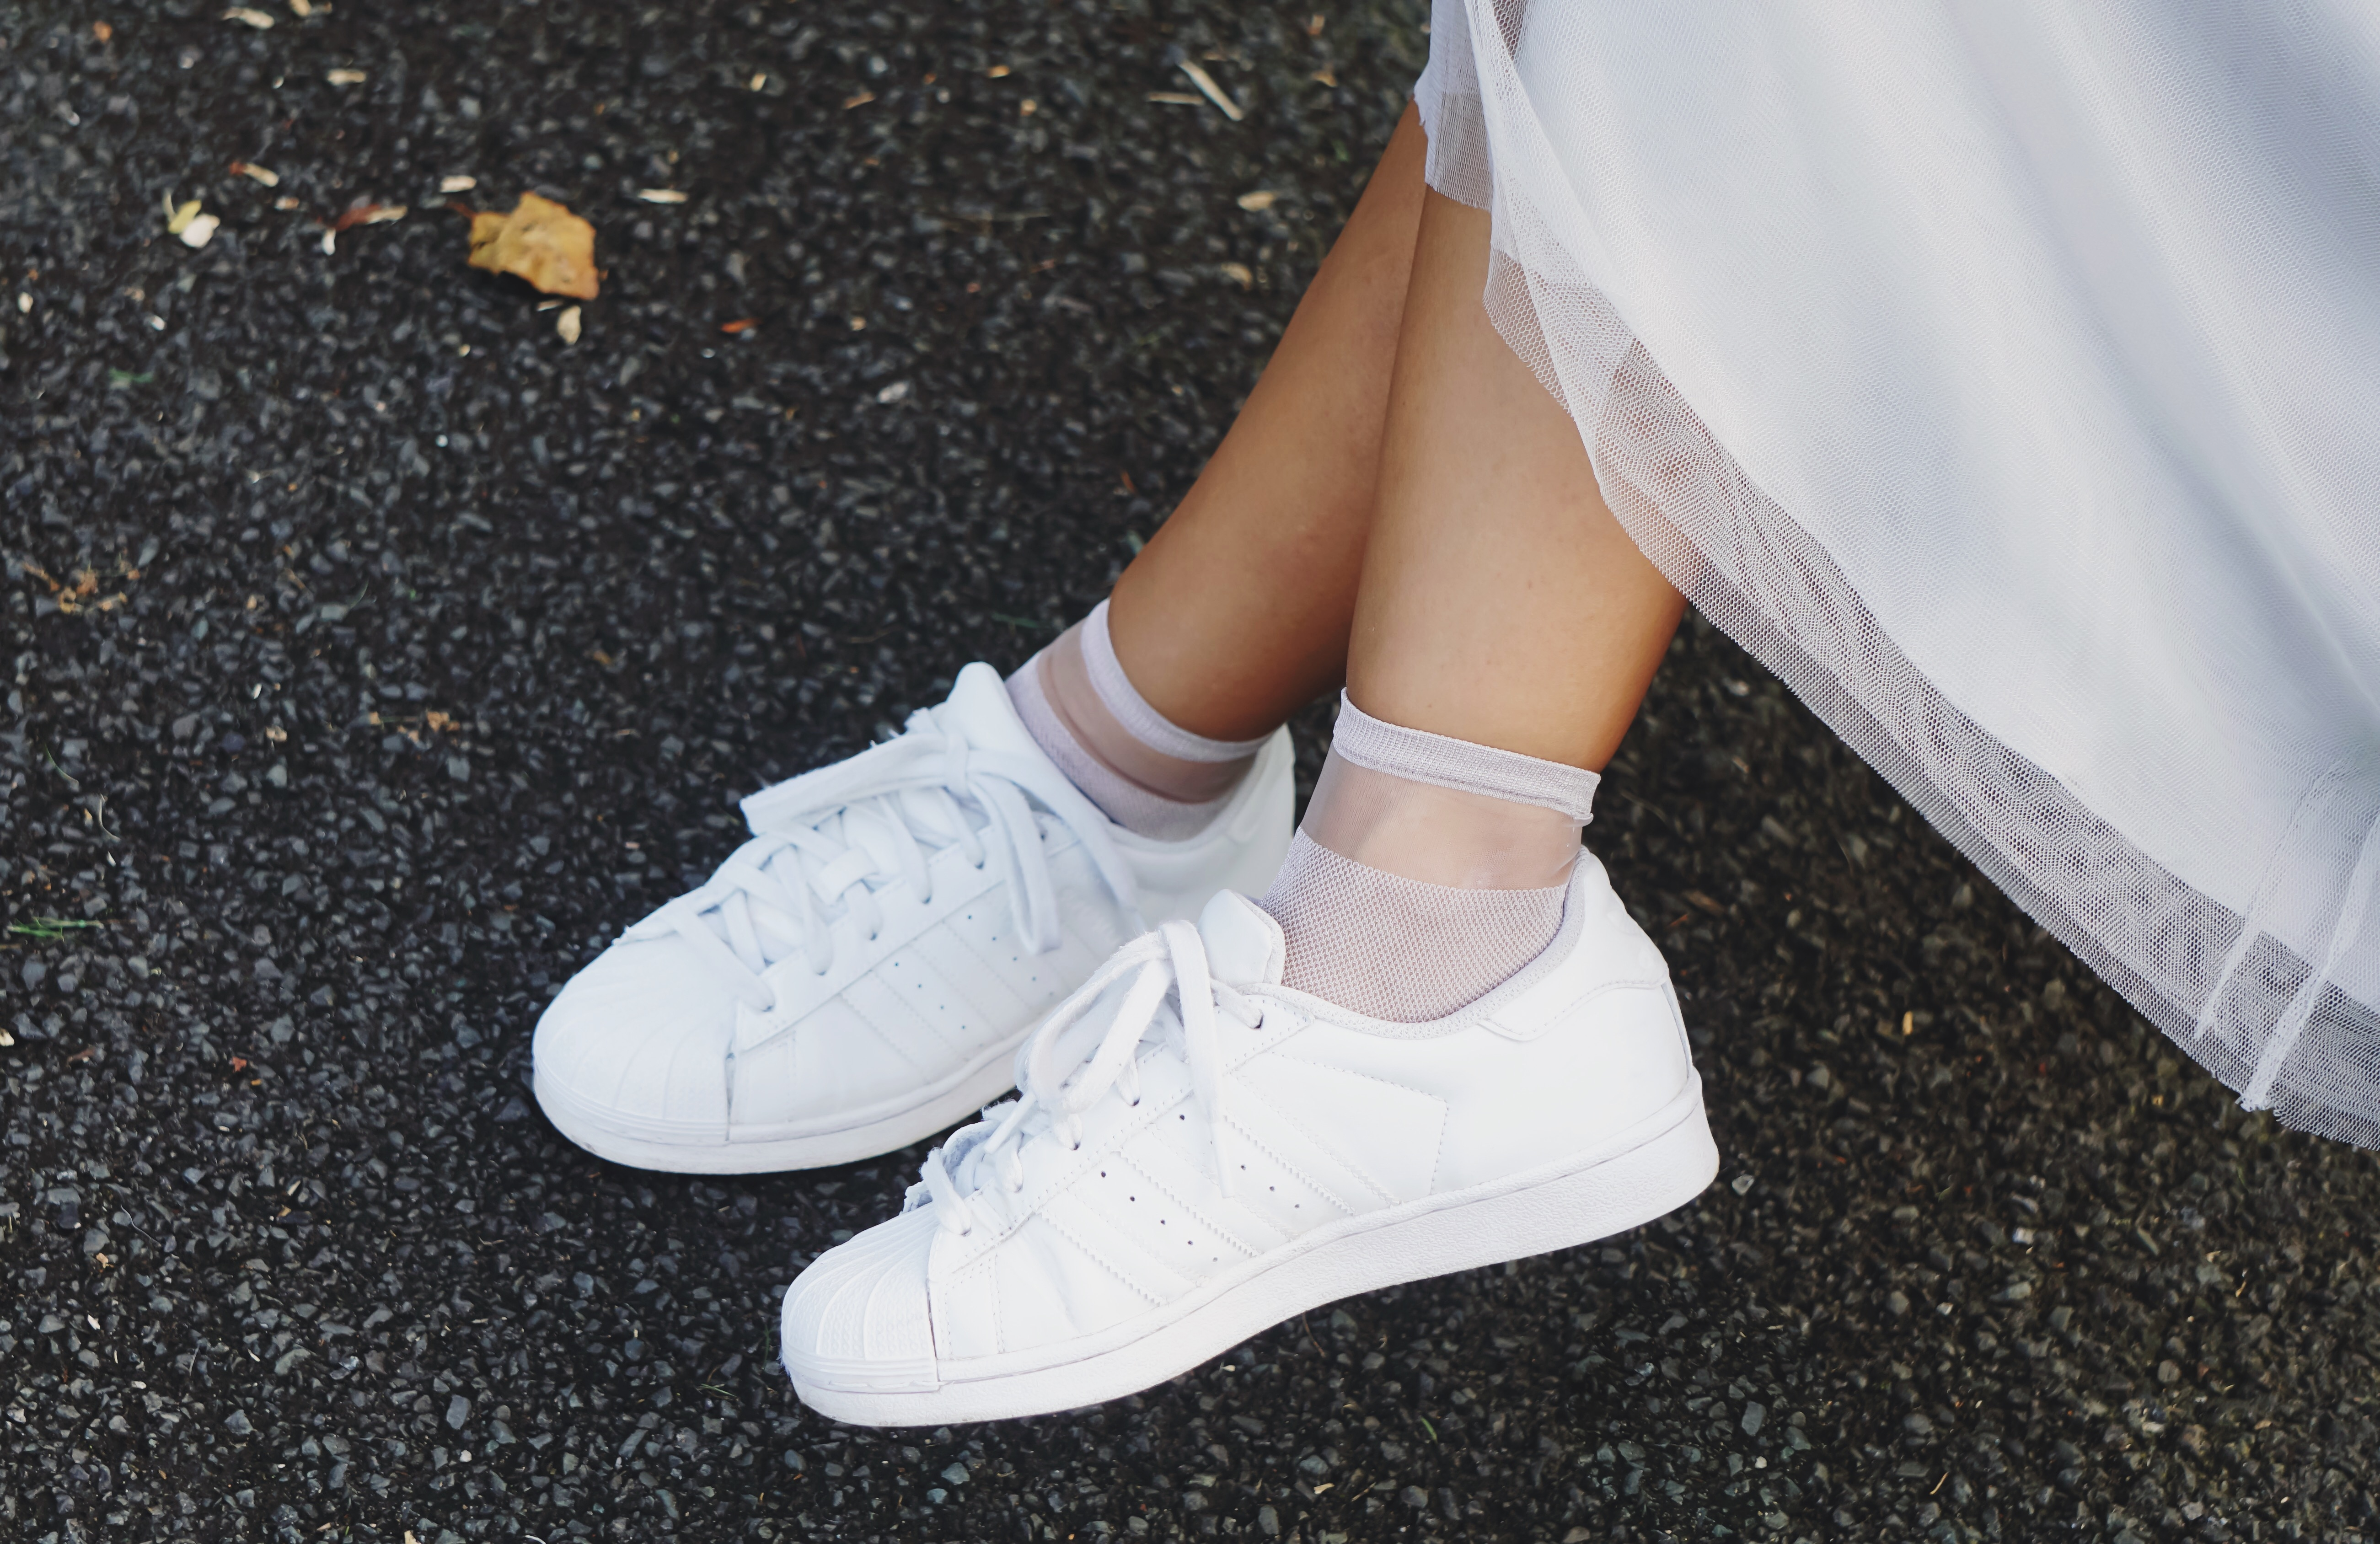 adidas originals Pharrell, hyphy hip , tulle skirt , HyphyHip, RayBan, reiss, fashion blogger , ootd, outfit post